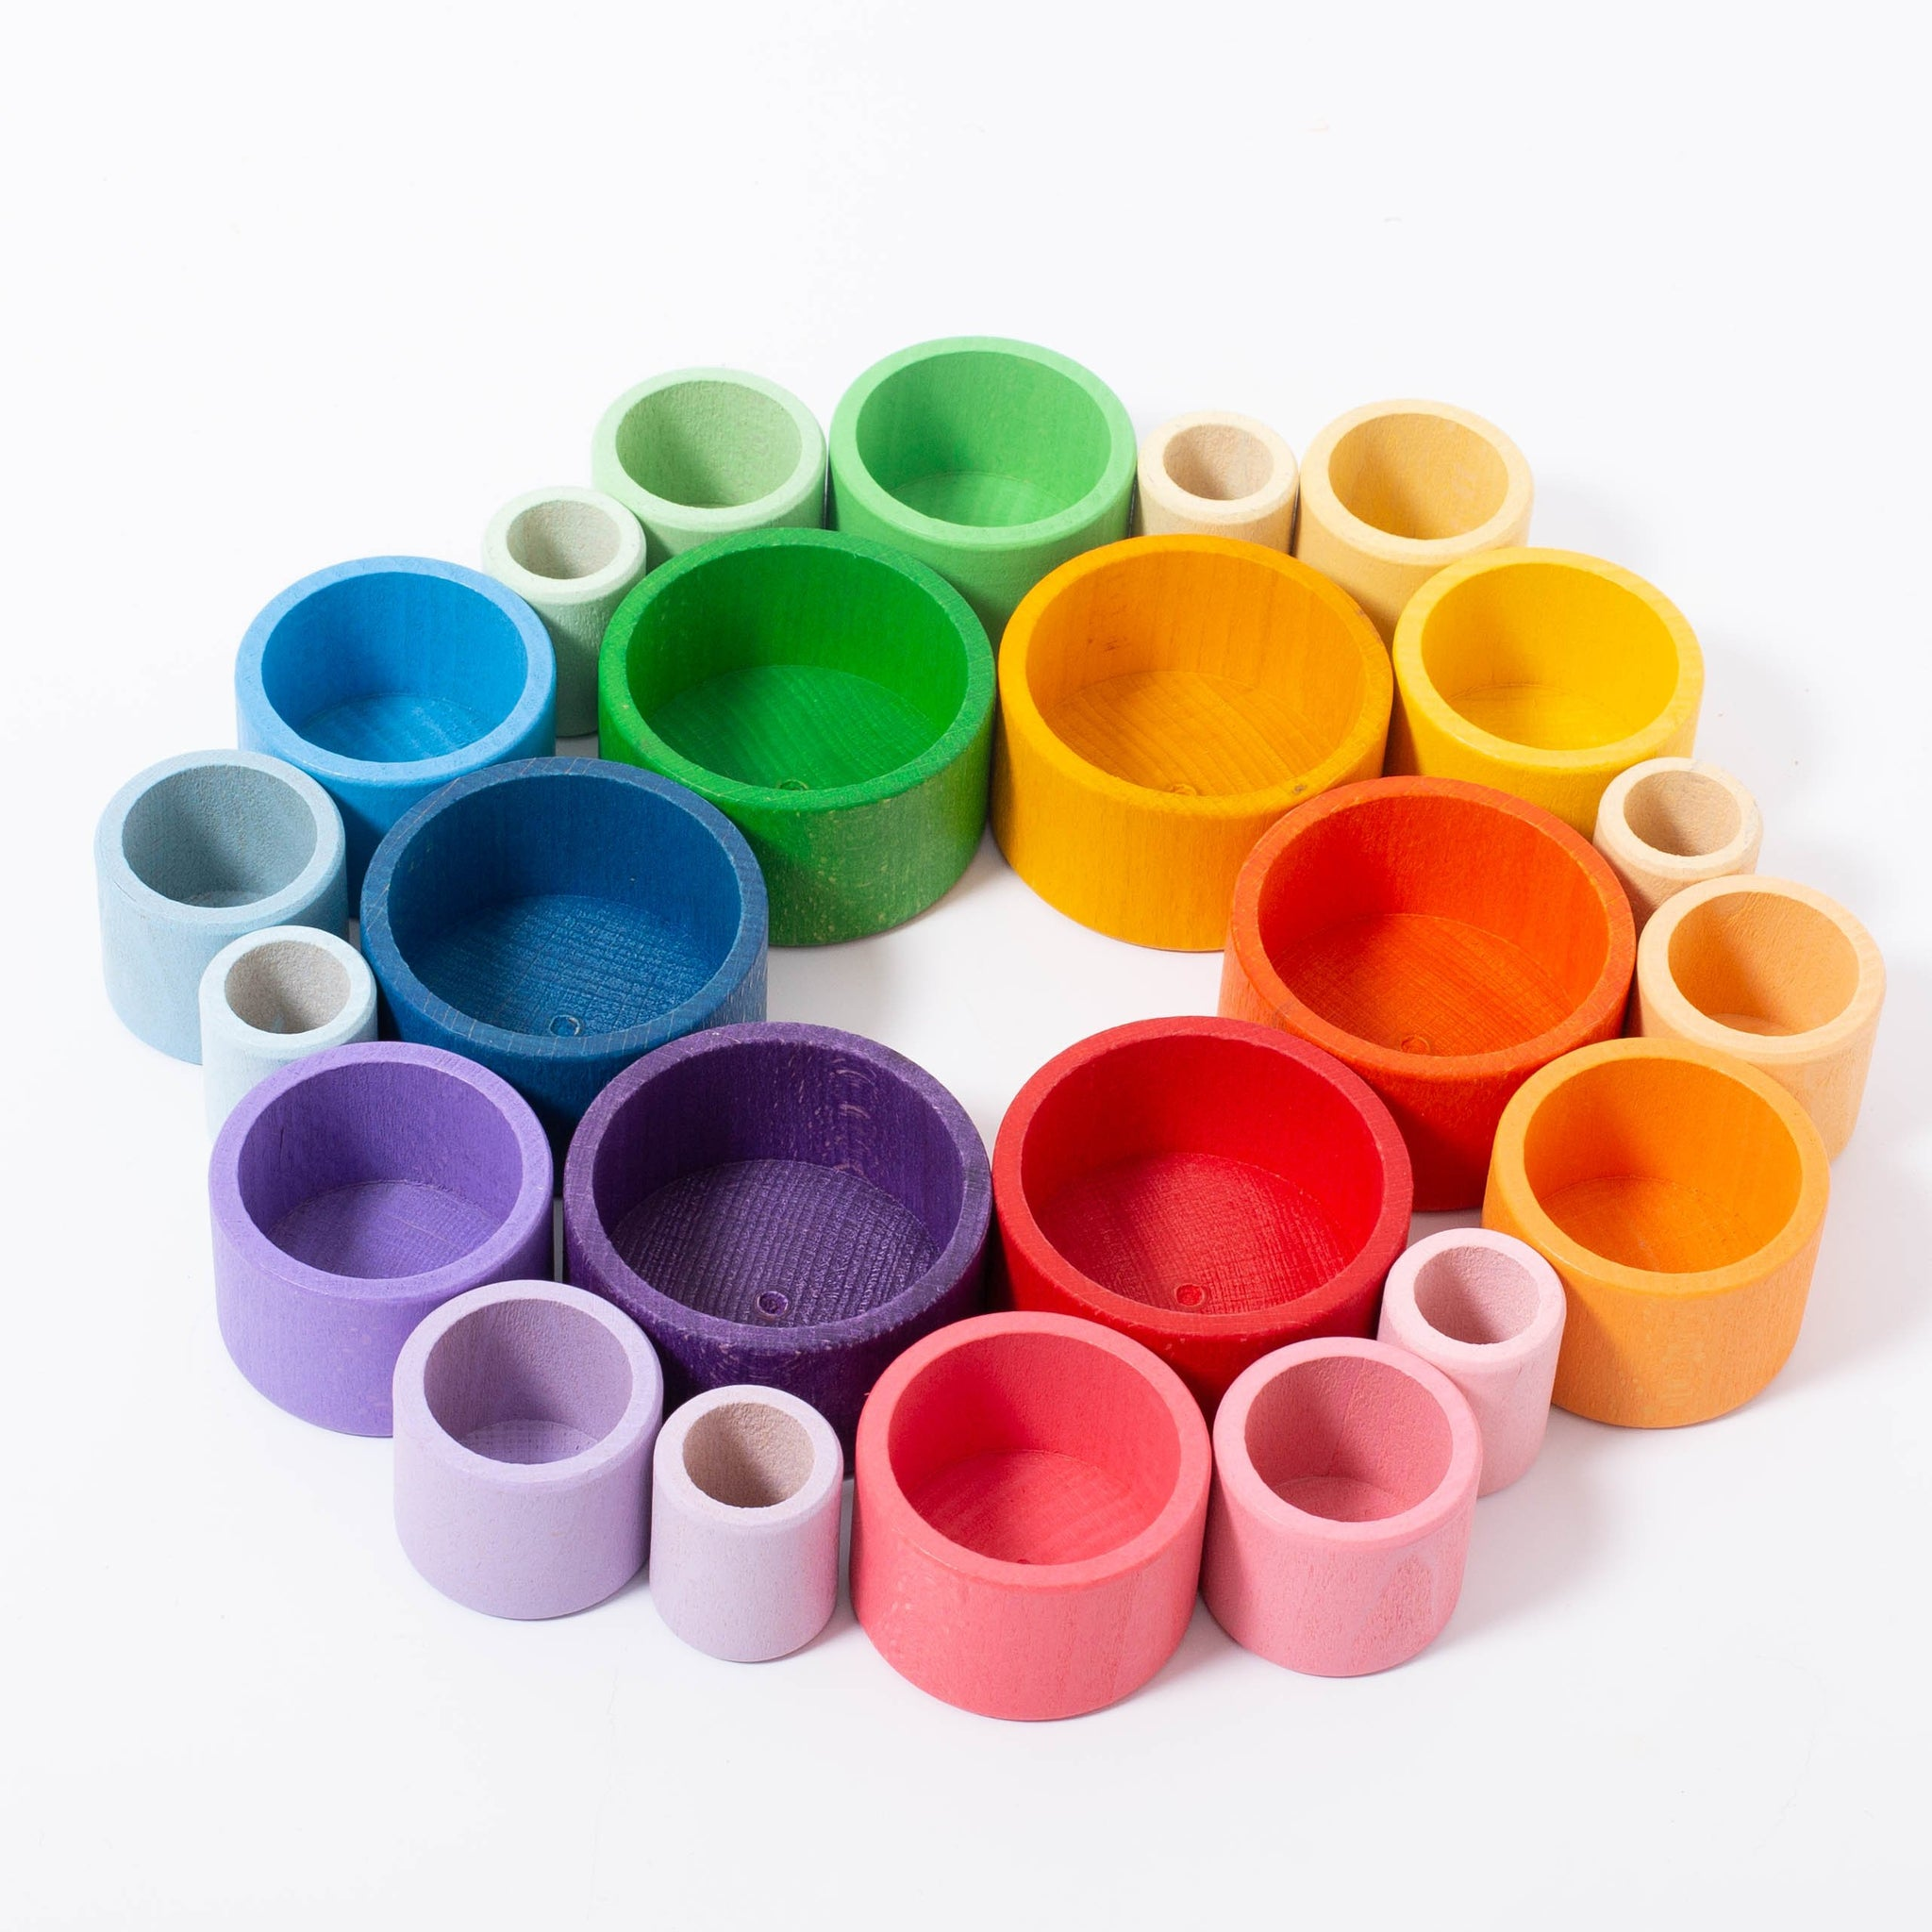 Grapat Nesting Bowls Set – Play to Learn